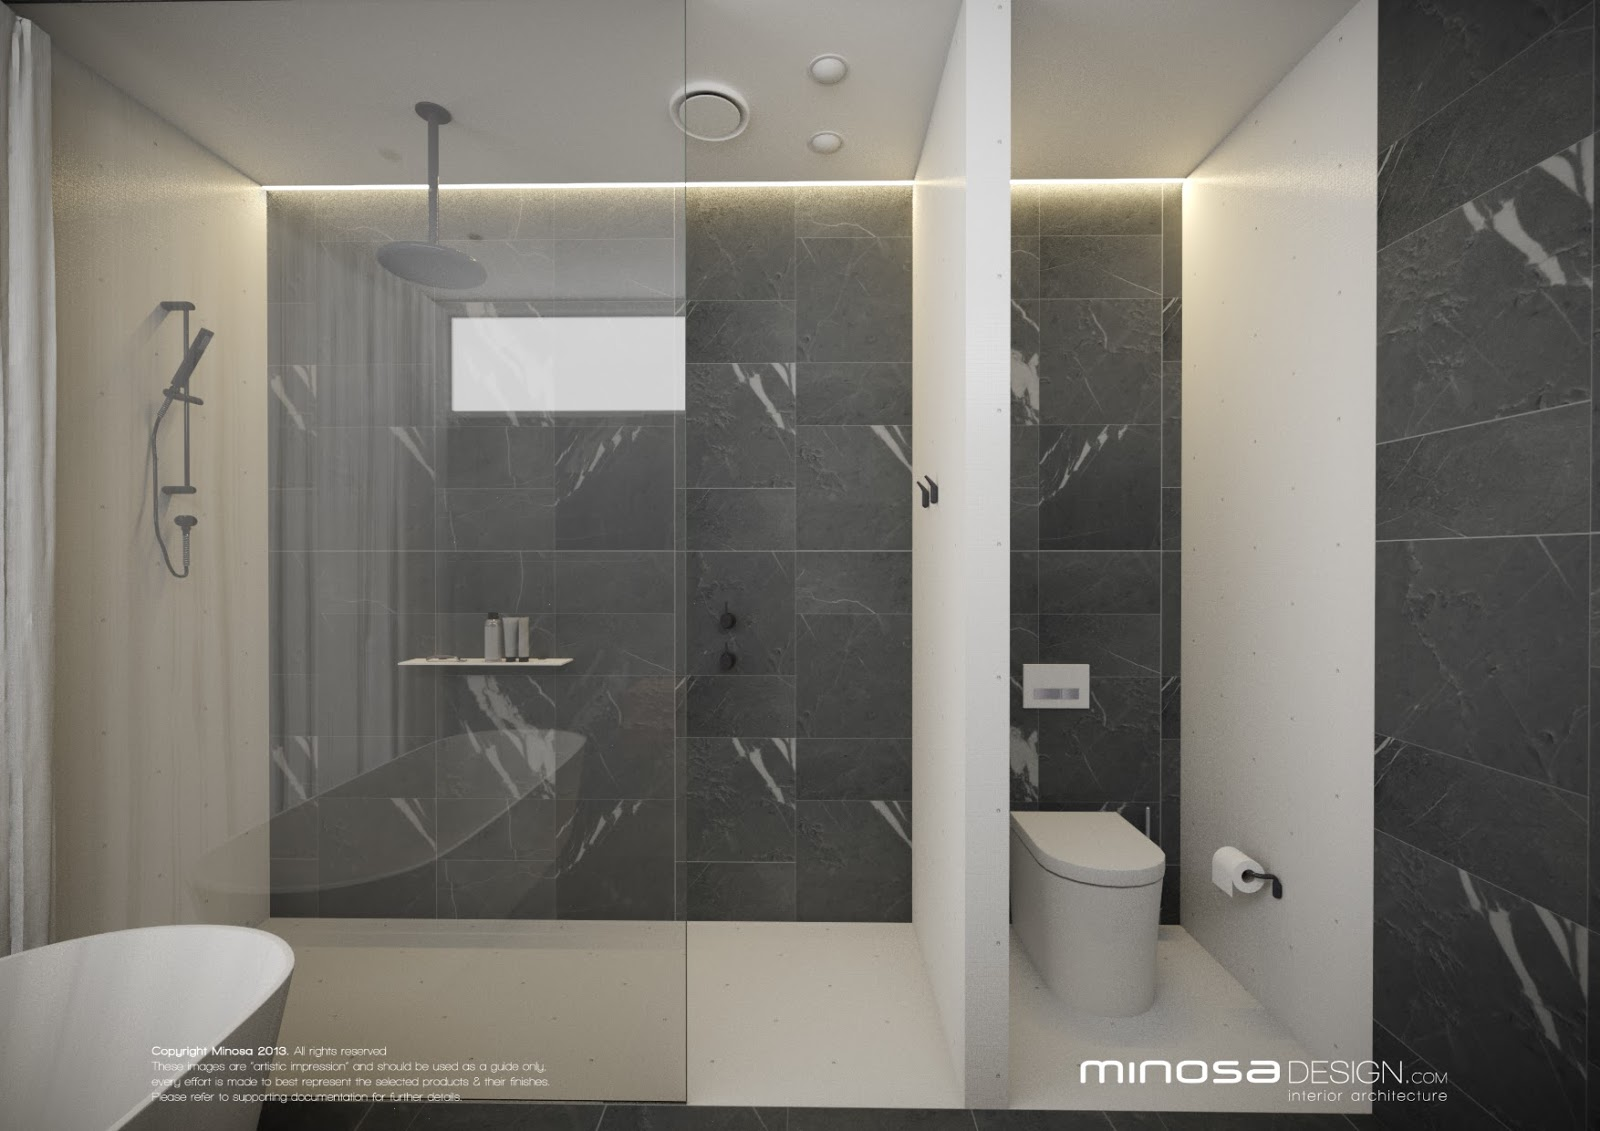 Minosa modern bathroom design to share for New style bathroom designs